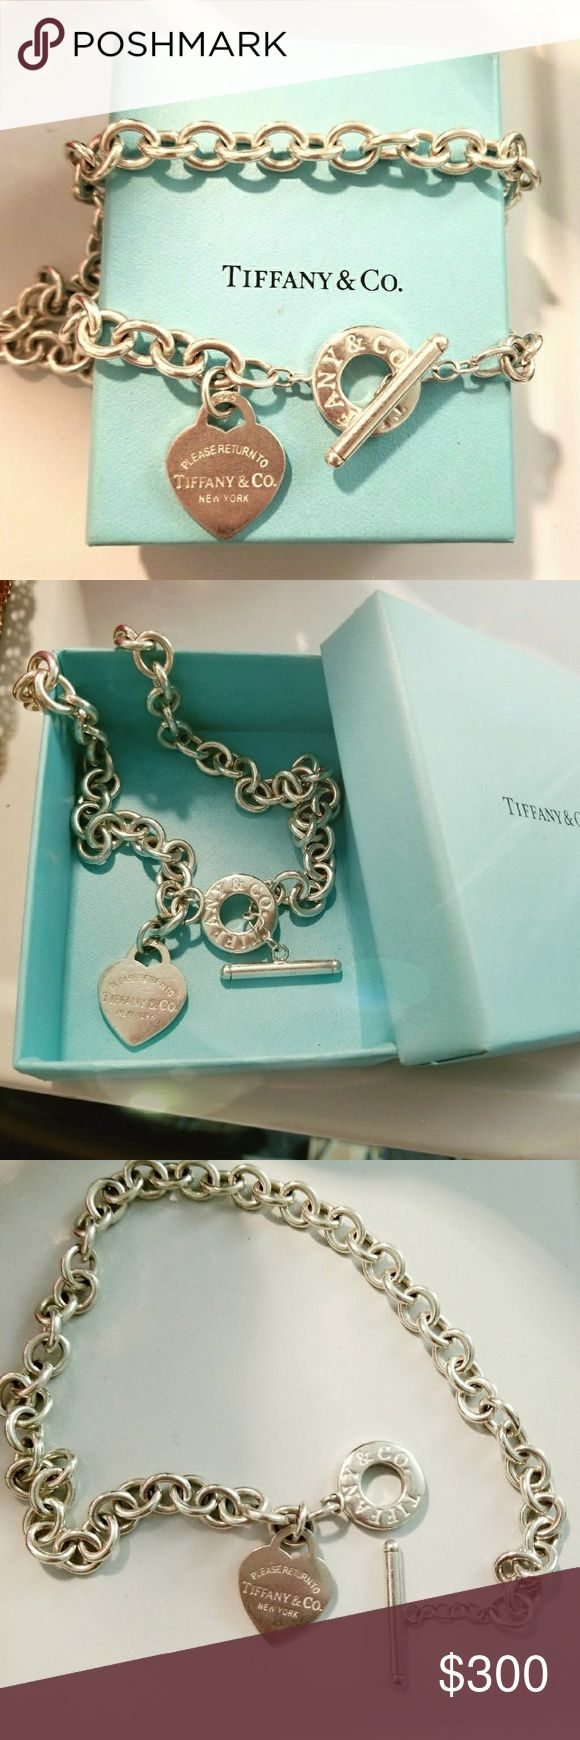 """Authentic Tiffany & Co. Toggle Heart necklace Authentic Tiffany & Co. """"Please Return To Tiffany & Co New York"""" Toggle Heart necklace set in sterling silver. Good, used condition and comes with box!   Price is negotiable! Tiffany & Co. Jewelry Necklaces"""